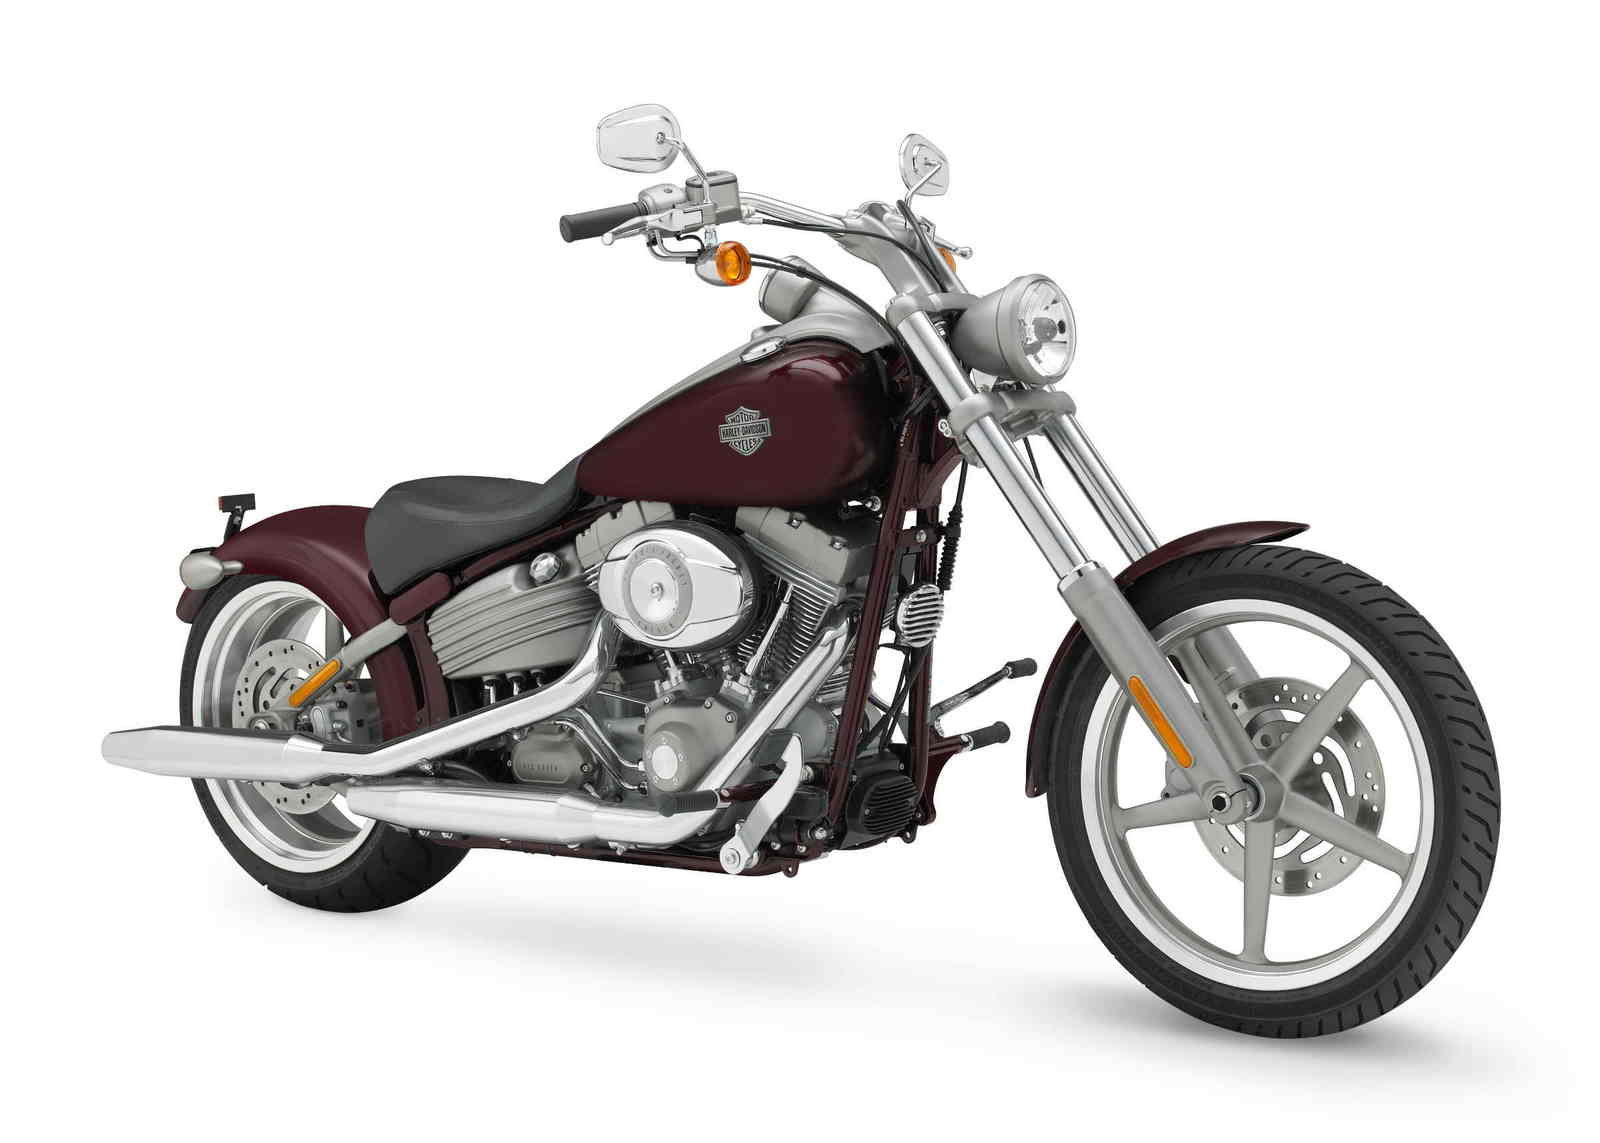 2008 Harley-Davidson FXCW Rocker Review